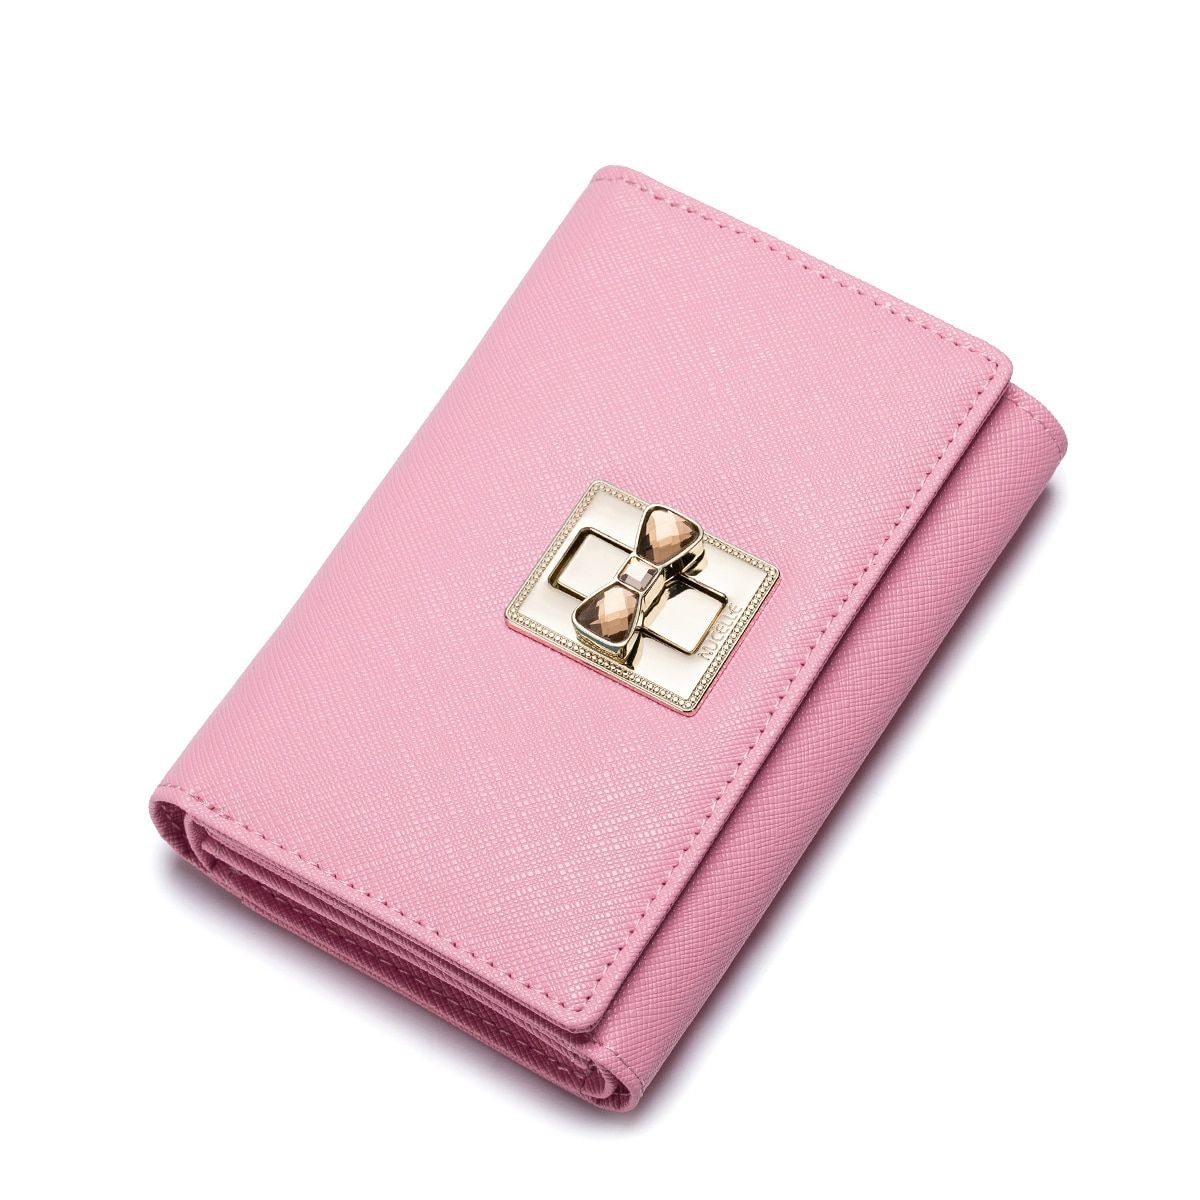 Genuine Leather Women Wallets Female Sweet Lock Cowhide Wallet Ladies Short Trifold Clutch Foldover Pouch Purse Money Clips